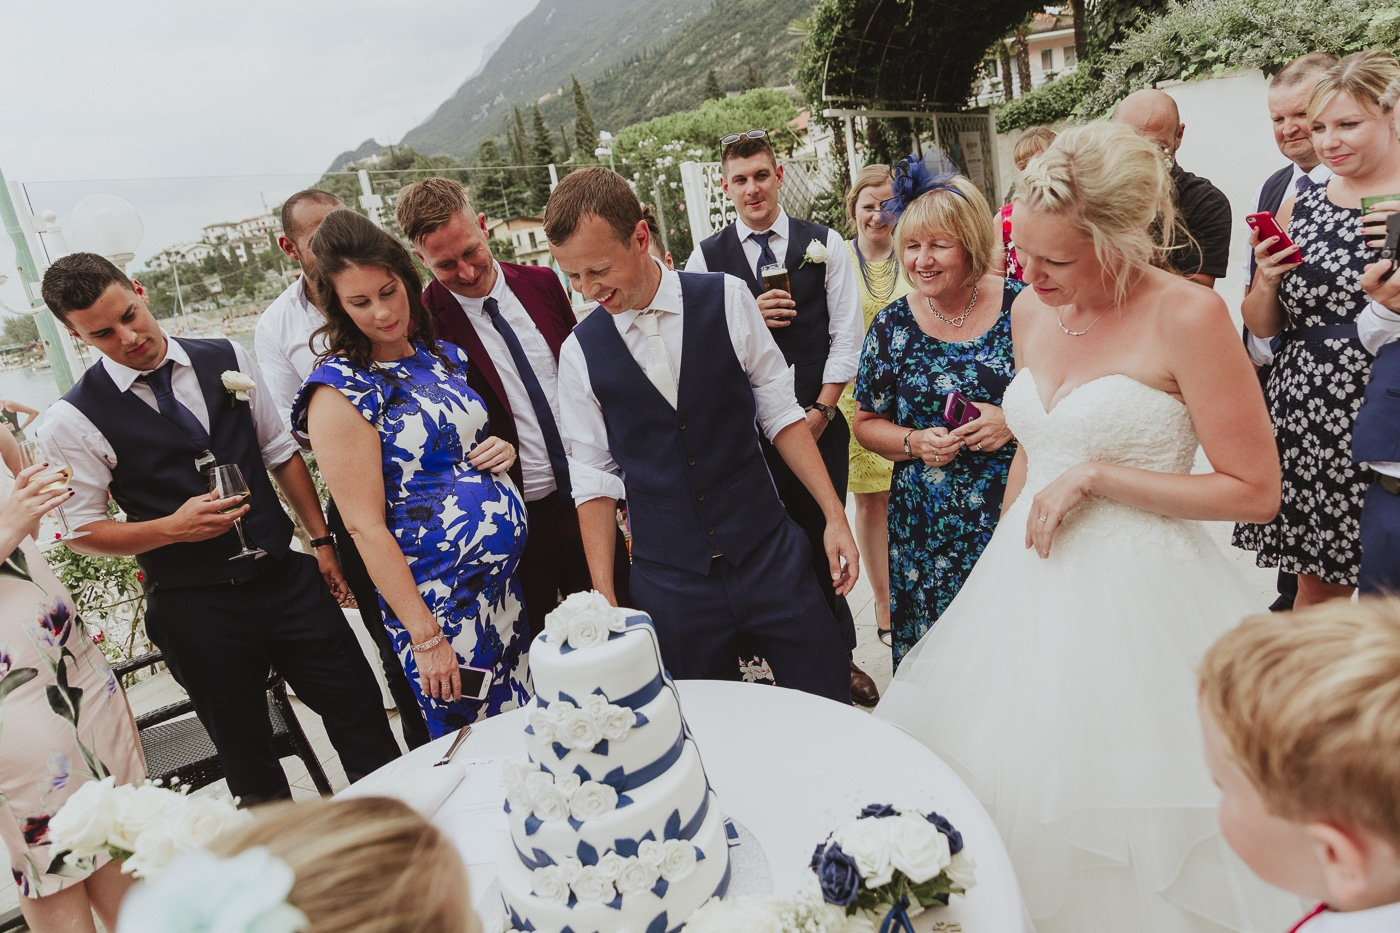 blue and white wedding cake with flowers cascading down it surrounded by bride, groom and guests in wedding attire by Joshua Wyborn